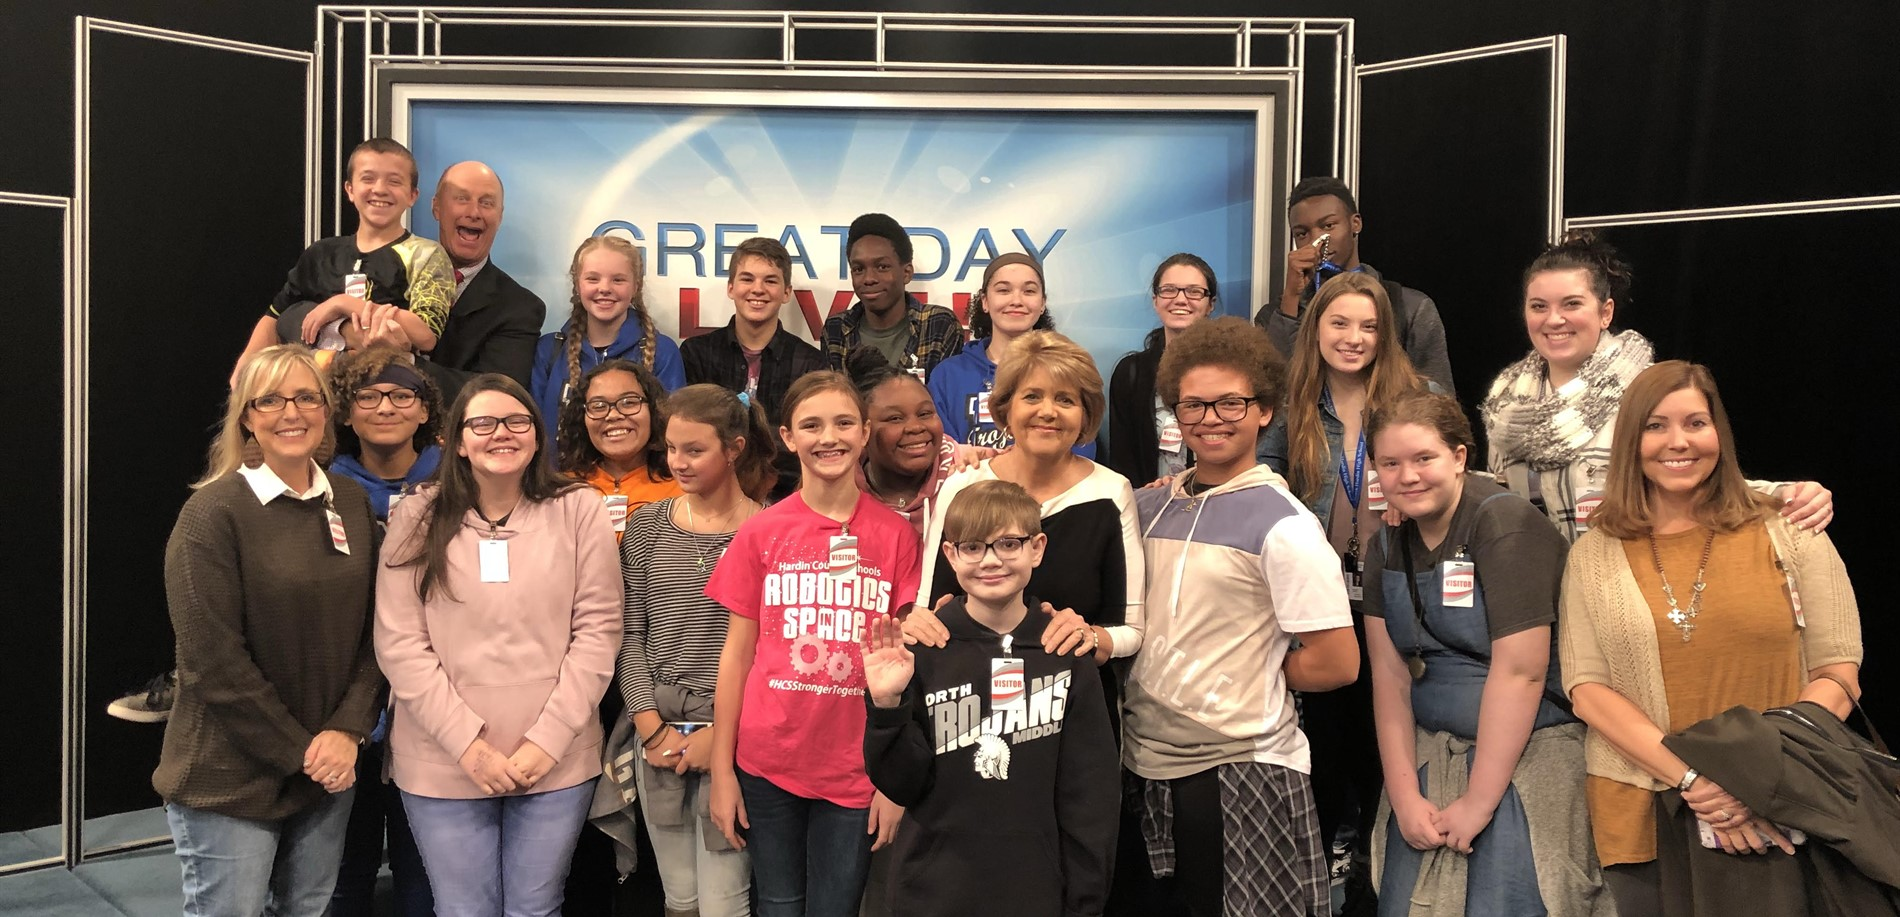 NMS and NHHS News Crews with Terry Meiners and Rachel Platt from WHAS 11